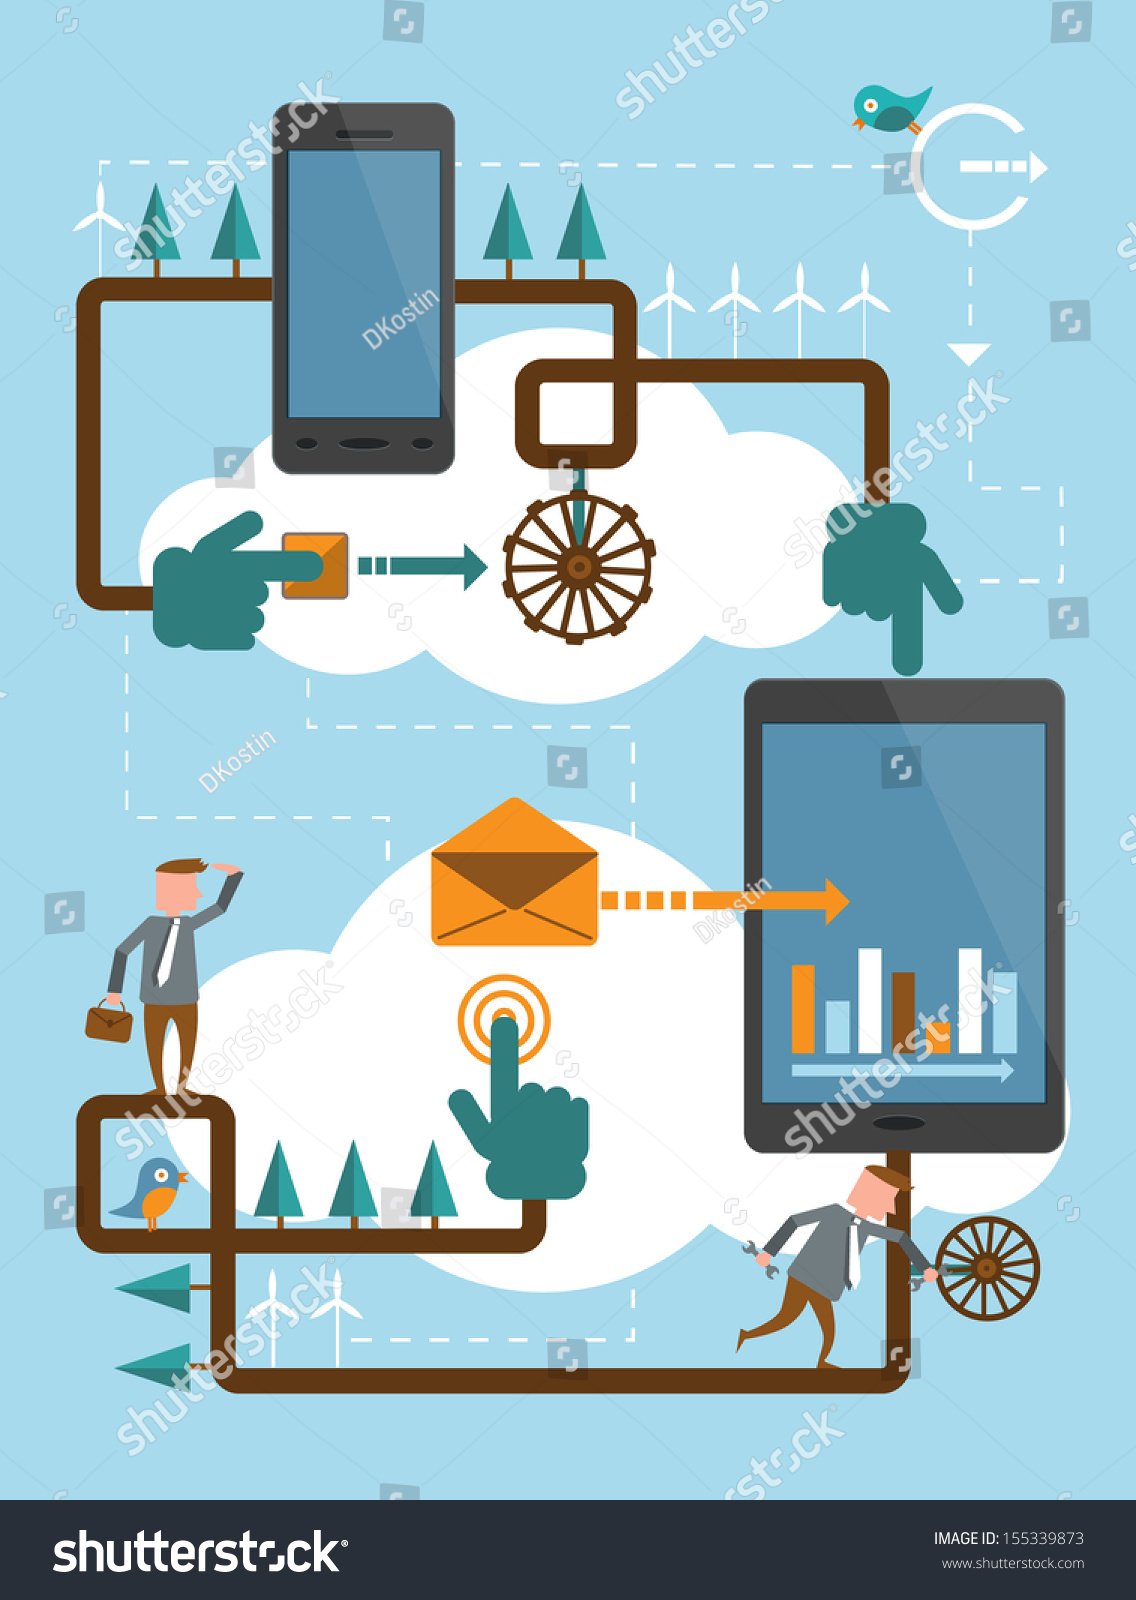 hight resolution of mobile phone work cloud illustration